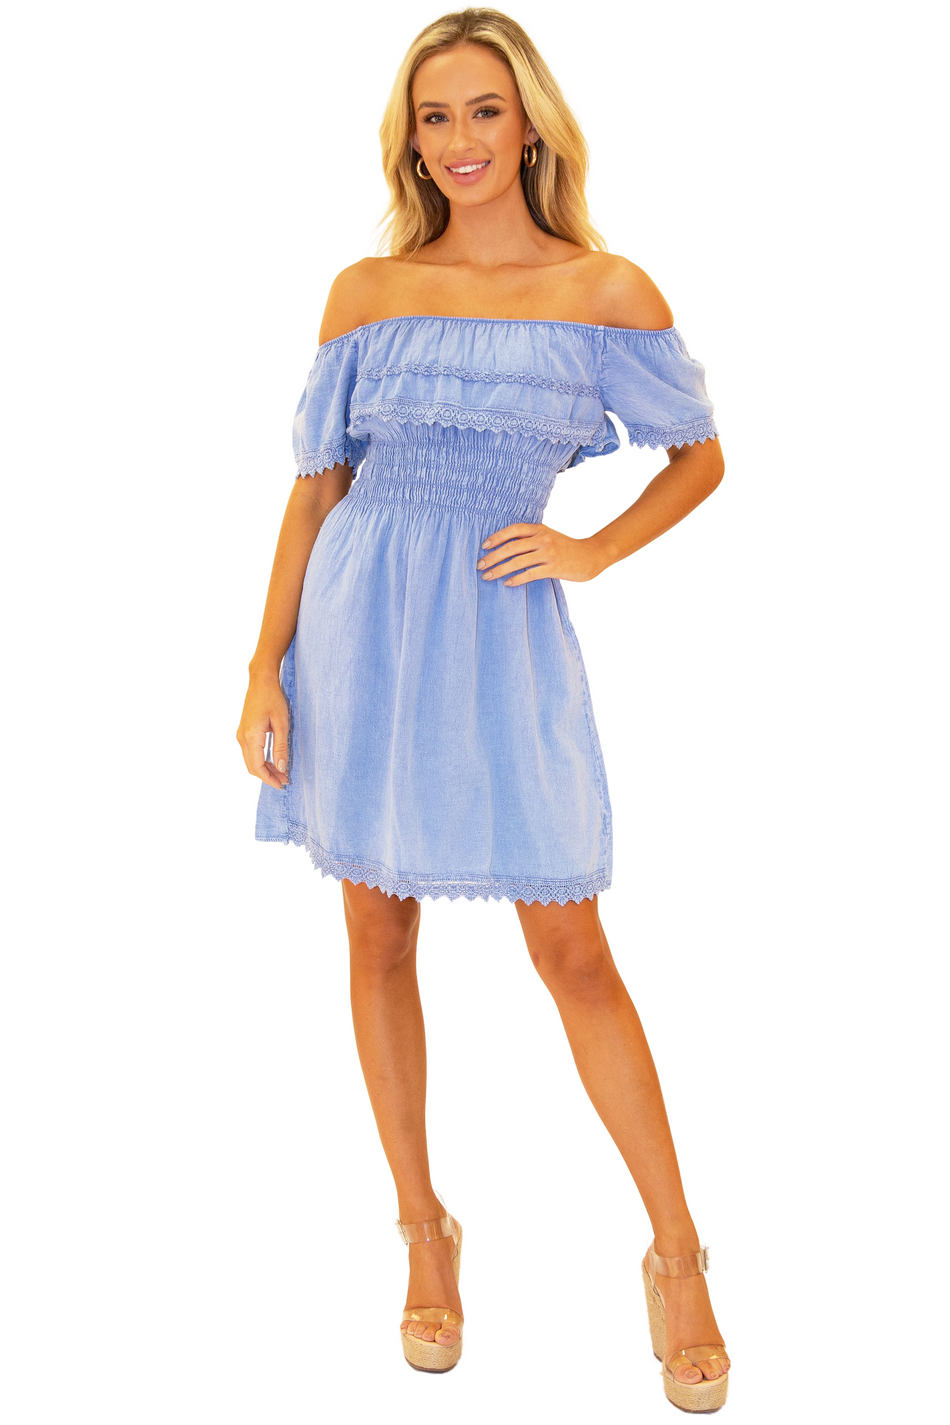 NW1066 - Blue Cotton Dress